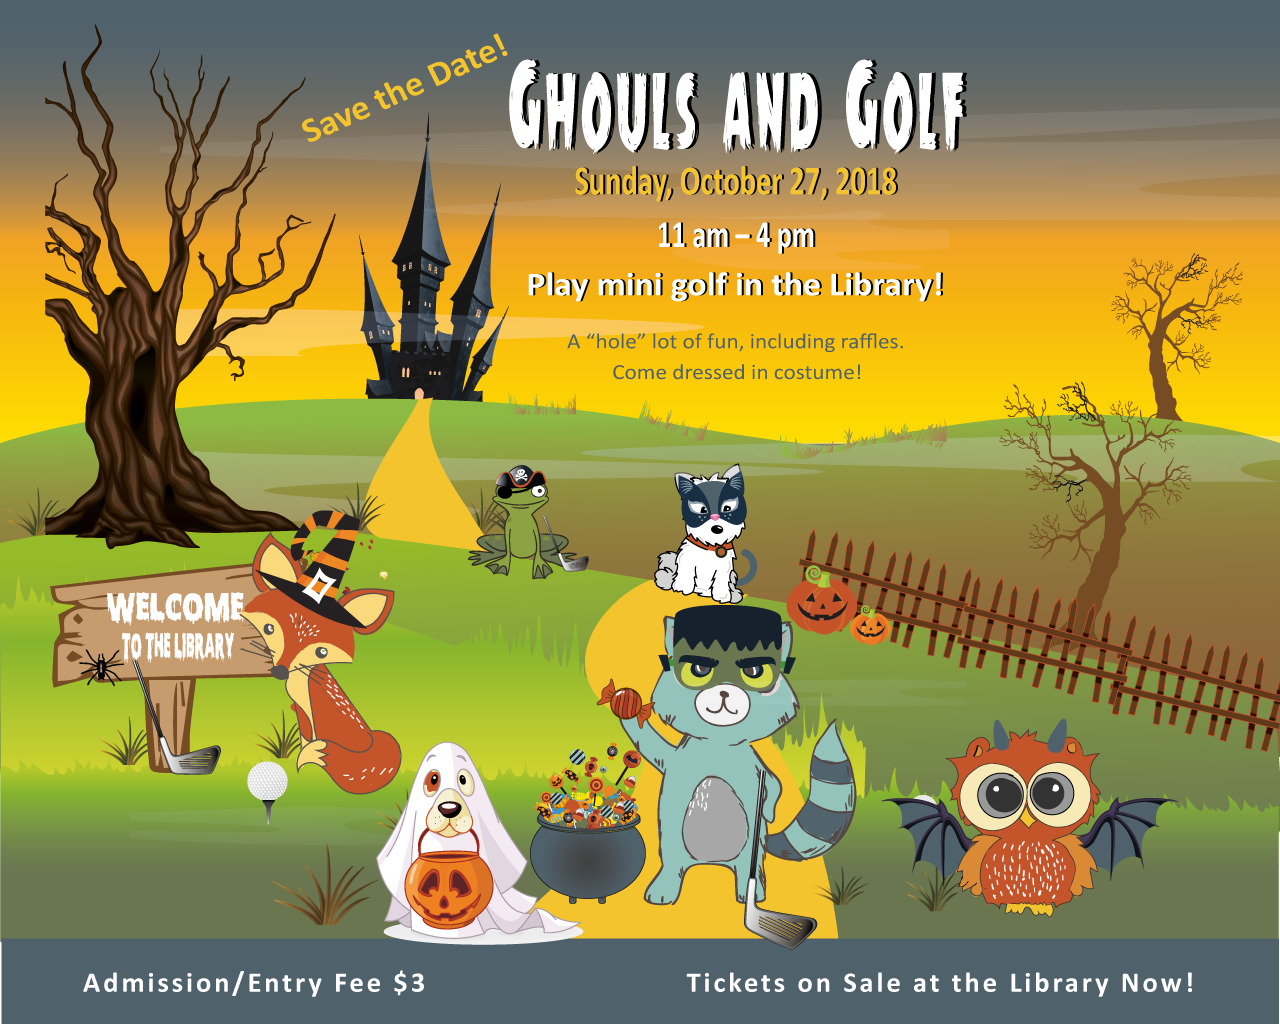 Ghouls and Golf illustration. Six cartoon animals stand on grassy hills in front of a haunted mansion with bare trees. A fox in a witch's hat stands next to a golf club, a golf ball, and a sign that says Welcome to the Library. A frog wears a pirate hat and eye patch. A fluffy white dog wears a black cat mask, and sits next to two jack-o-lanterns. In the foreground, a basset hound wearing a ghost costume carries a plastic pumpkin bag for candy. To the right, a raccoon in a Frankenstein masks holds up candy from the full candy cauldron between them. Farthest right, an owl wears horns and bat wings.